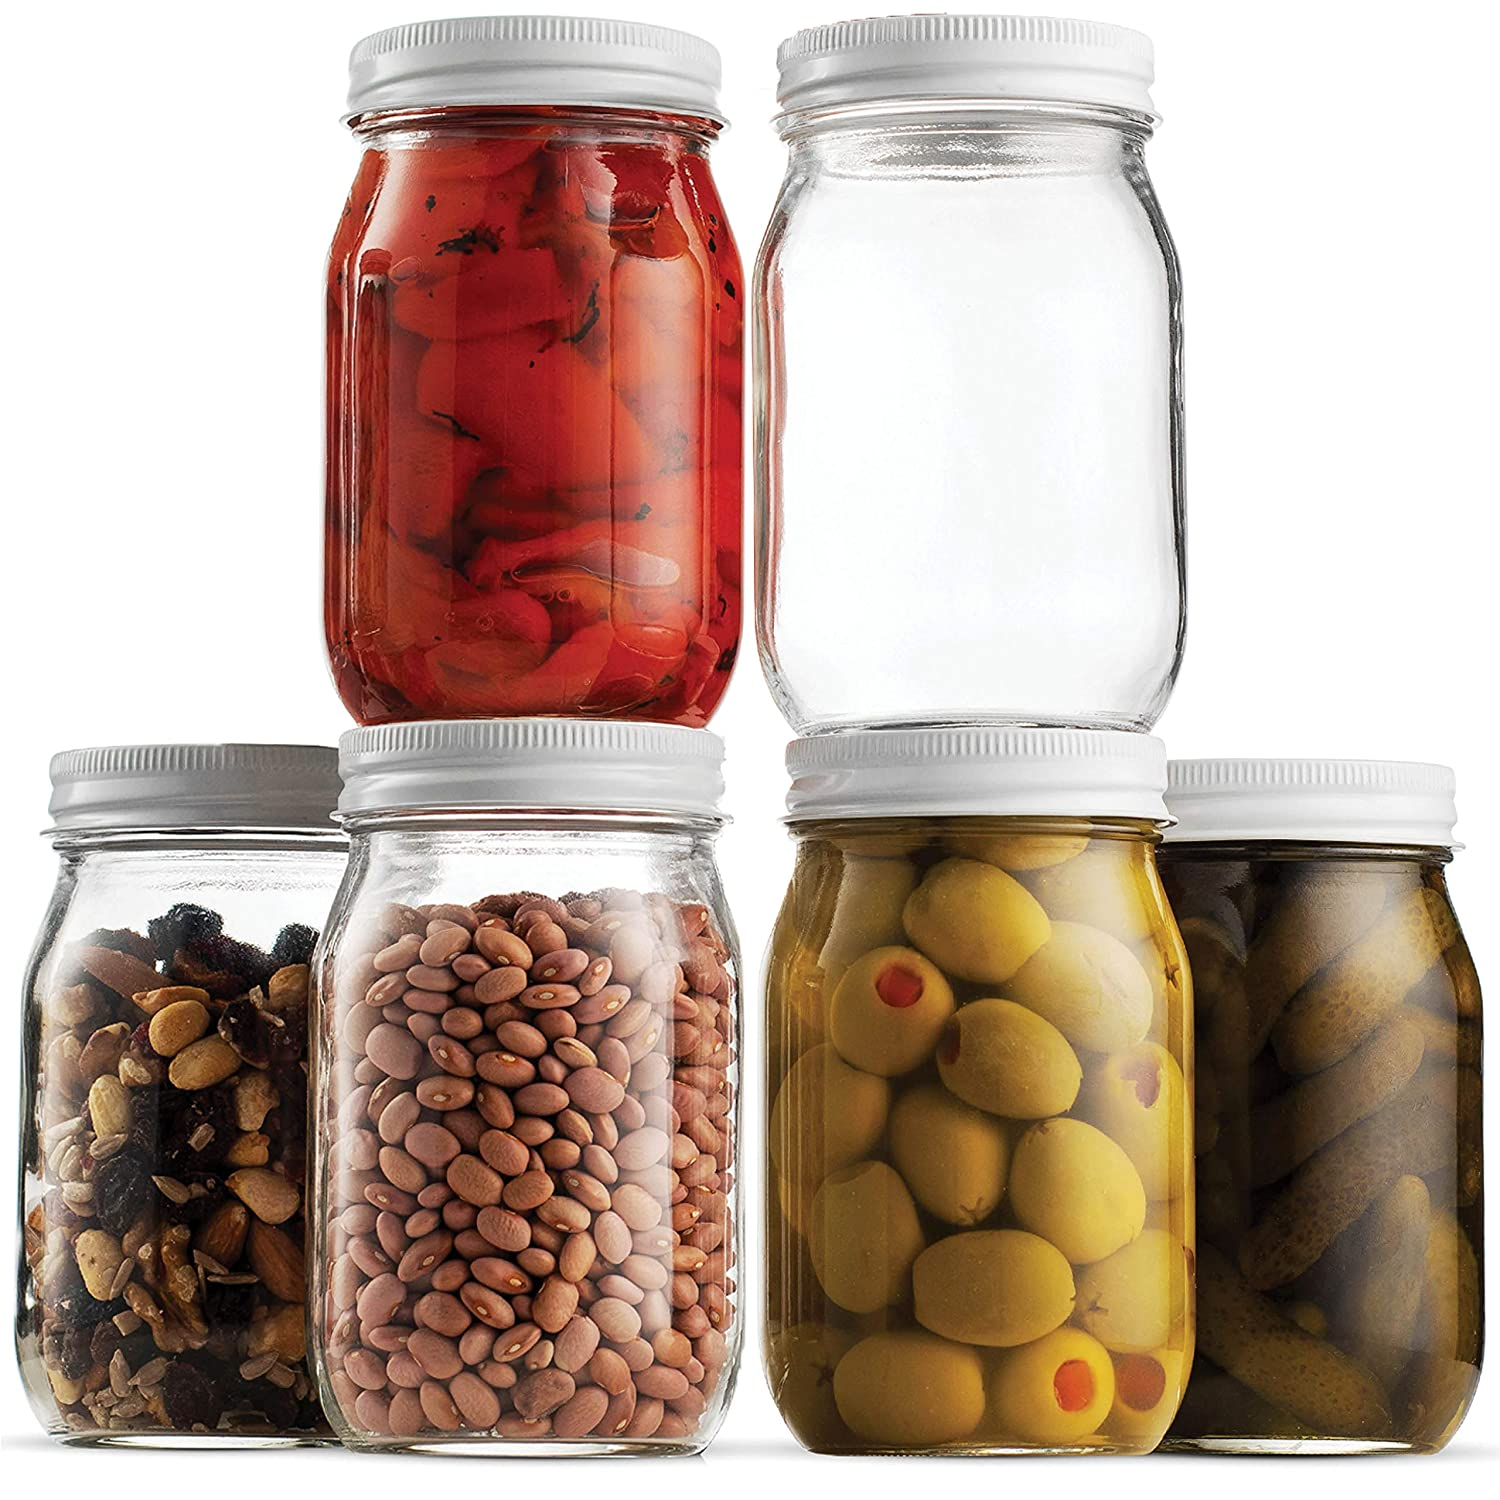 Glass Mason Jar 16 Ounce (1 Pint) - 6 Pack - Regular Mouth, Metal Airtight Lid, USDA Approved, Pickling, Preserving, Jam, Honey, Jelly, Canning Jars, Dry Food Storage, Craft Storage, Decorating Jar